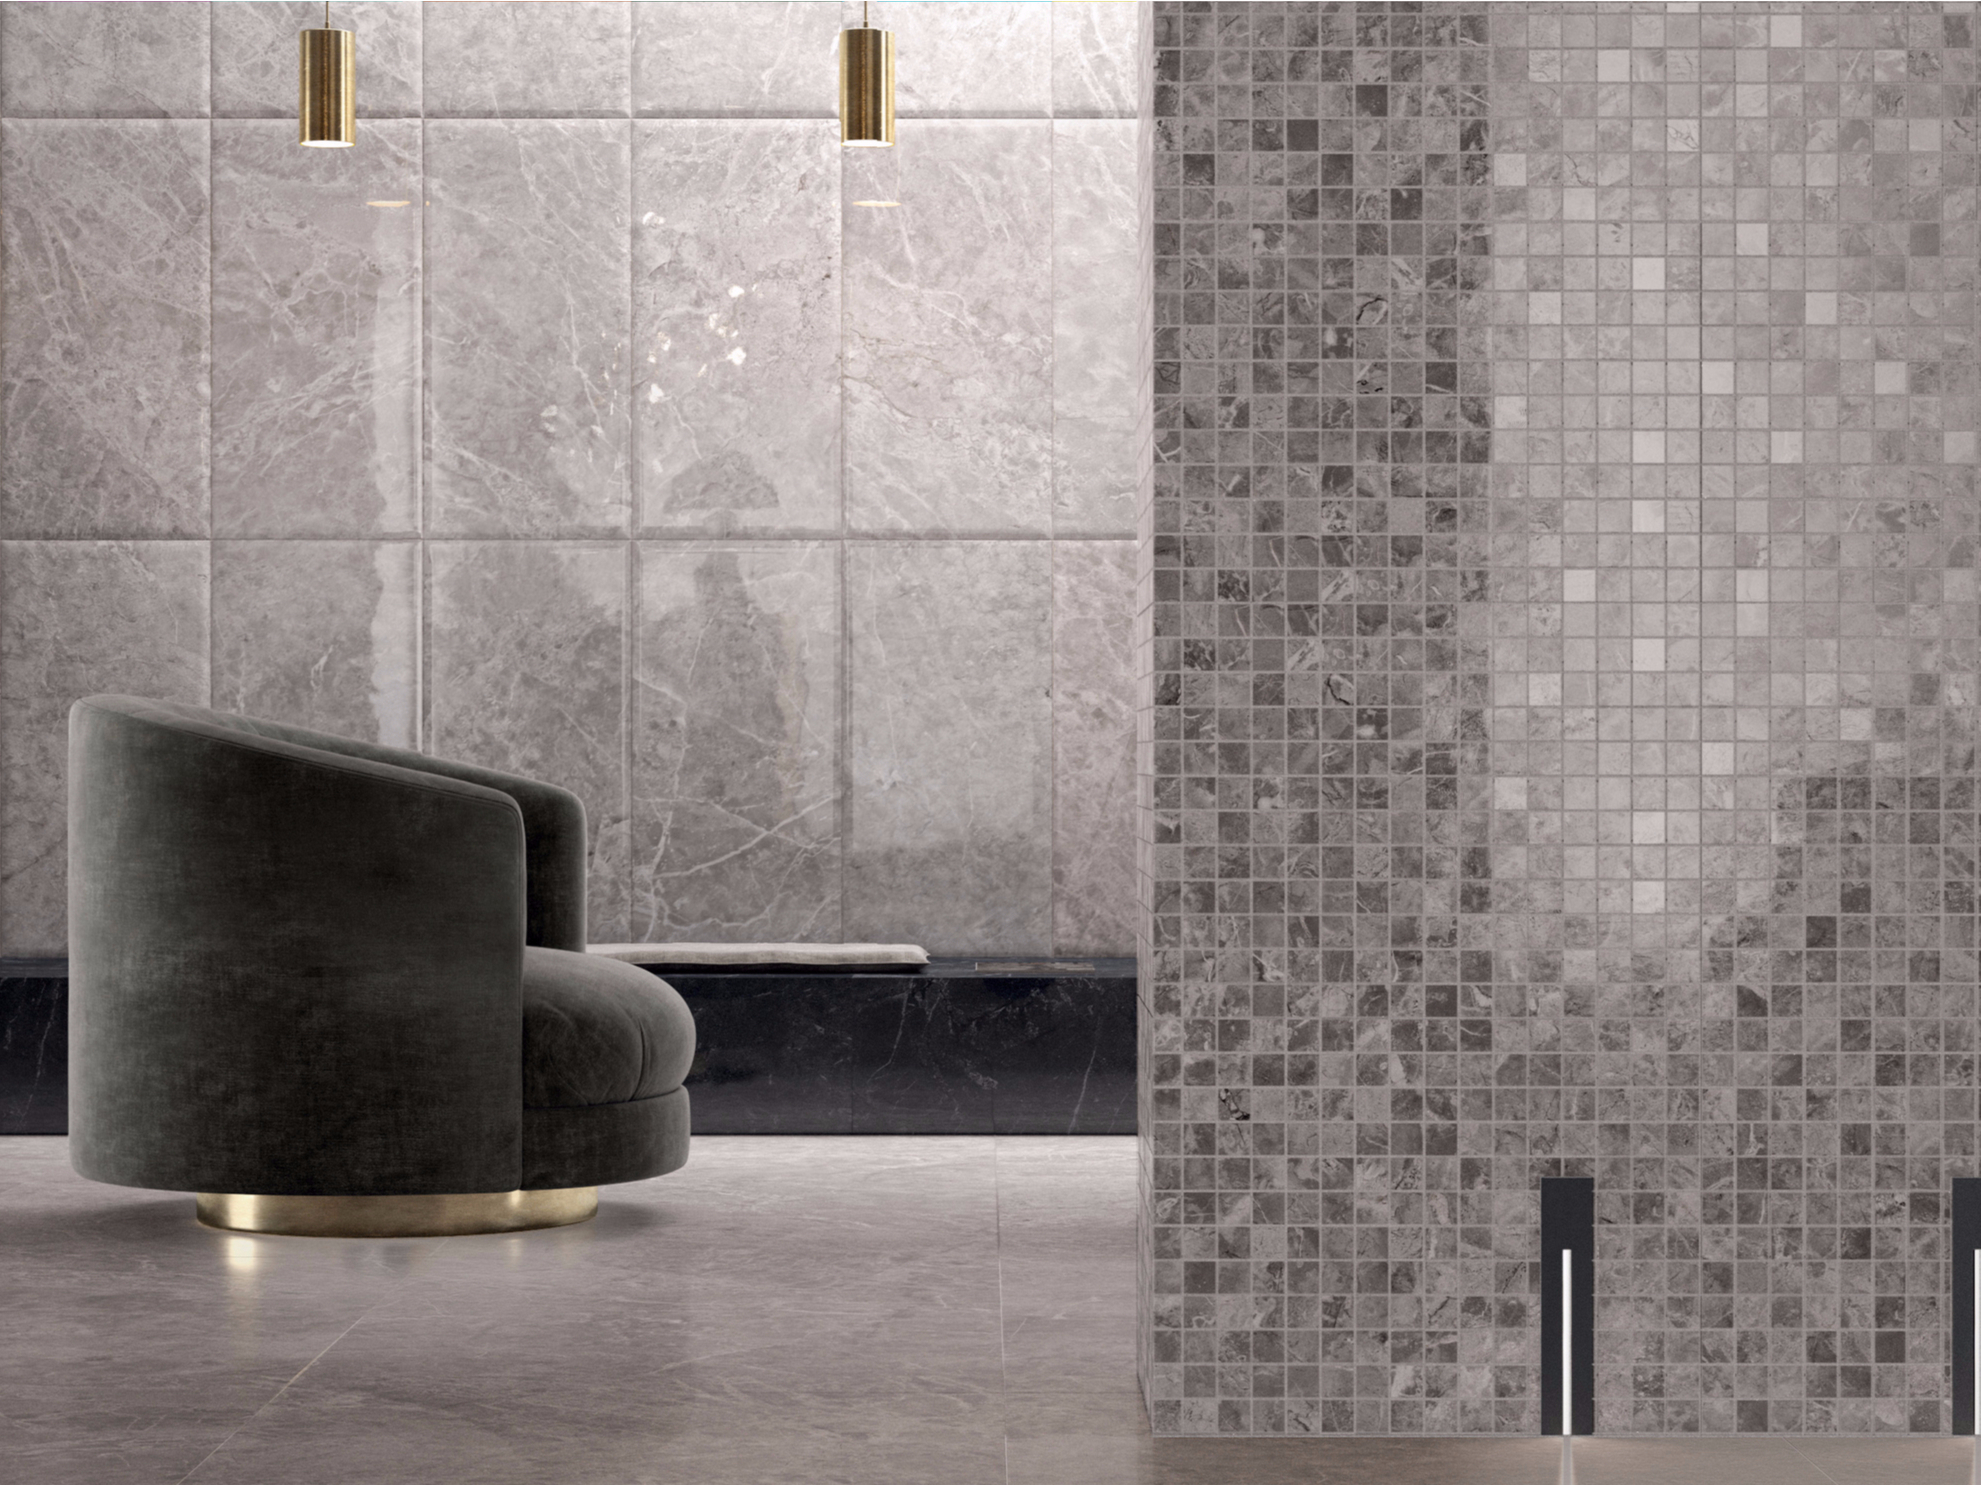 newluxe mosaic newluxe collection by ceramiche marca corona. Black Bedroom Furniture Sets. Home Design Ideas